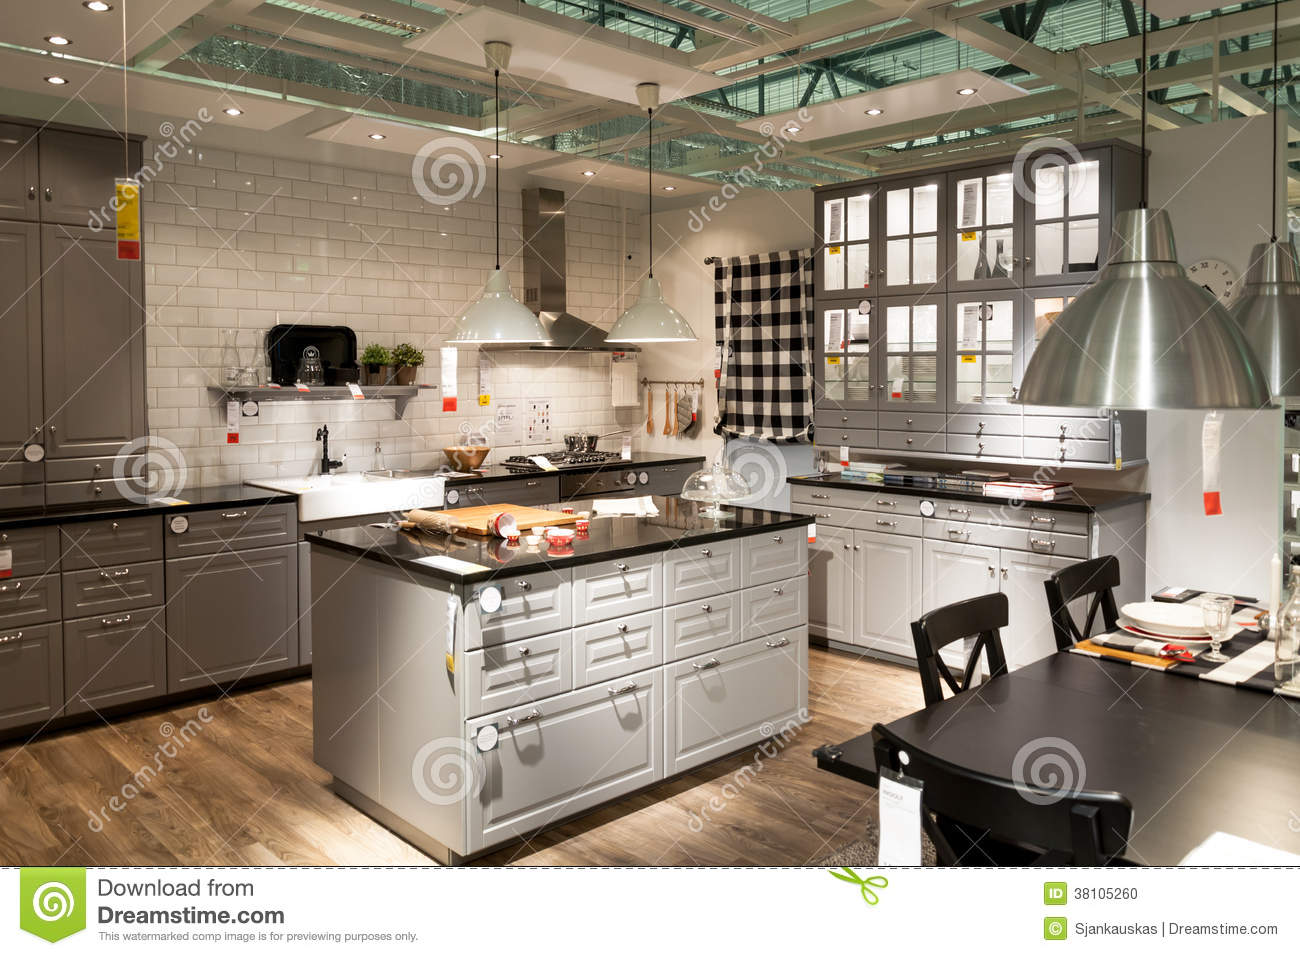 Kitchen in furniture store ikea editorial image image 38105260 Home hardware furniture collingwood